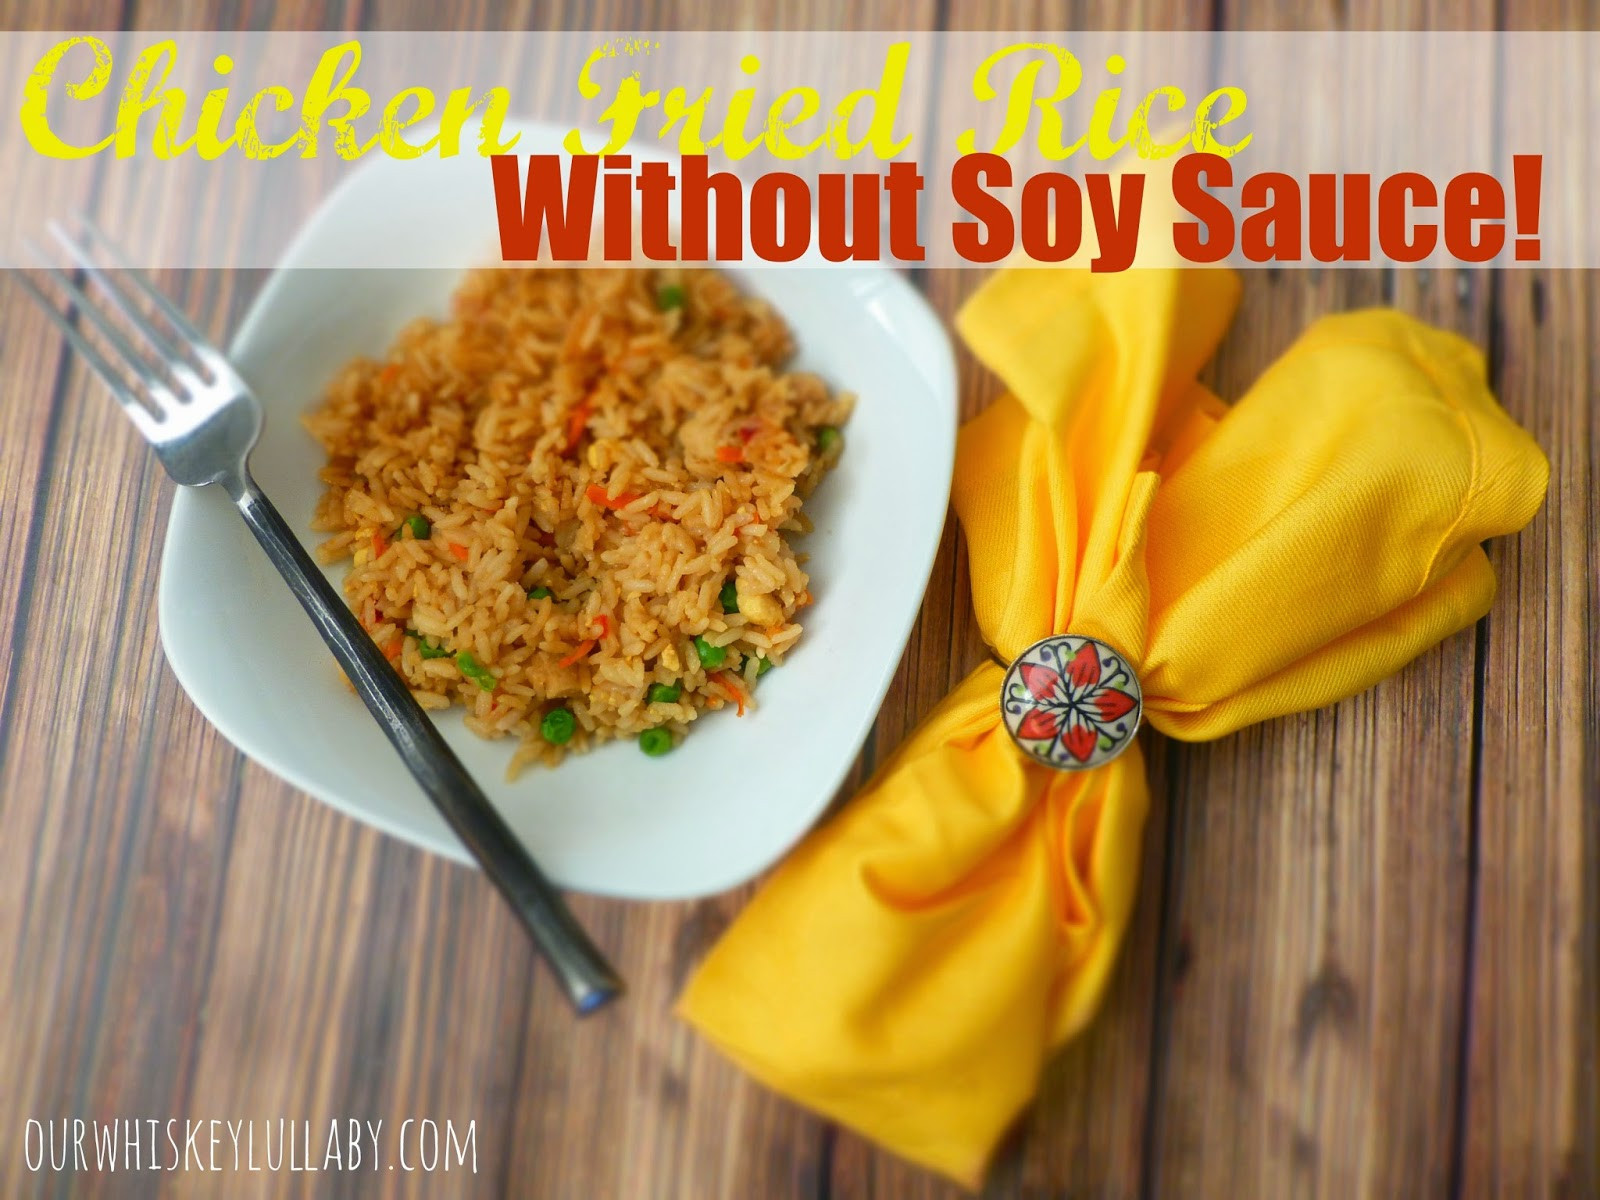 Fried Rice Without Soy Sauce  Chicken Fried Rice Without Soy Sauce SuccessRice ad